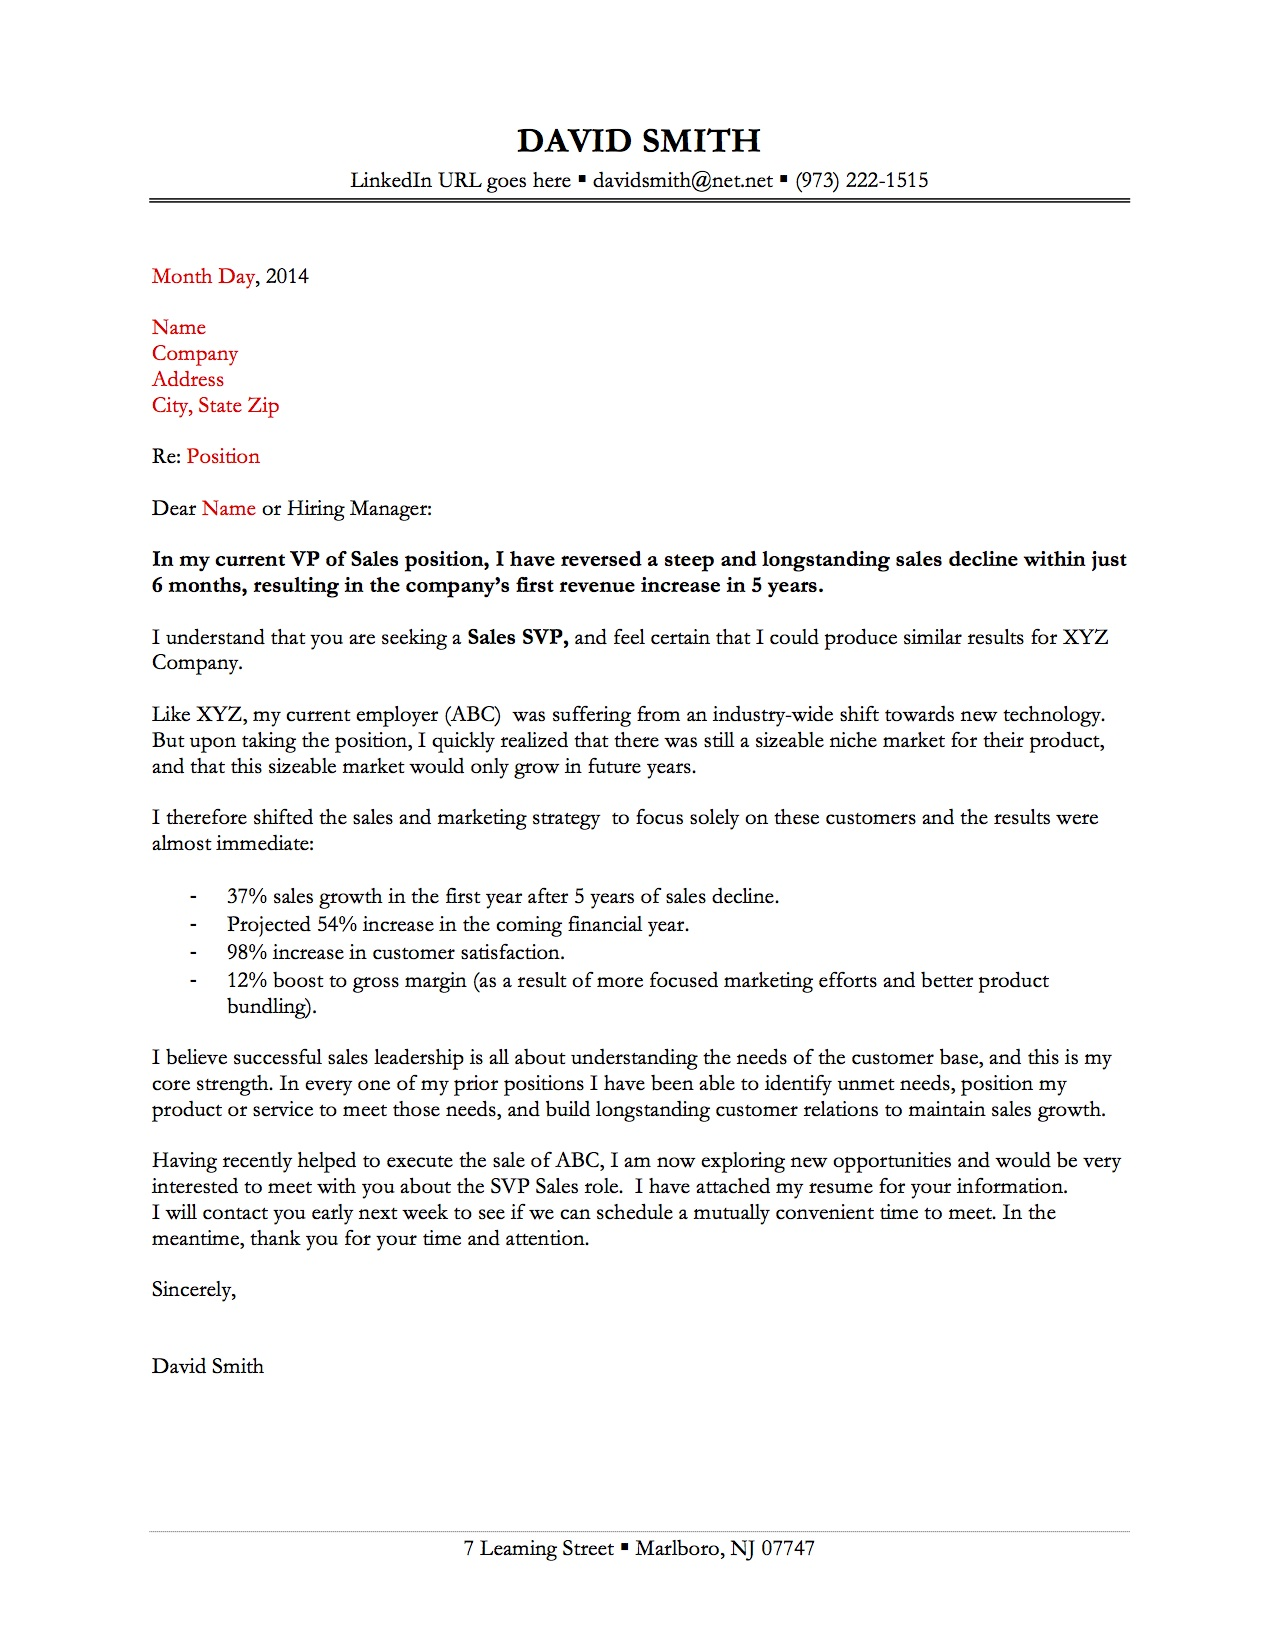 samples cover letter sample cover letter cover letter tips - How To Write A Strong Cover Letter